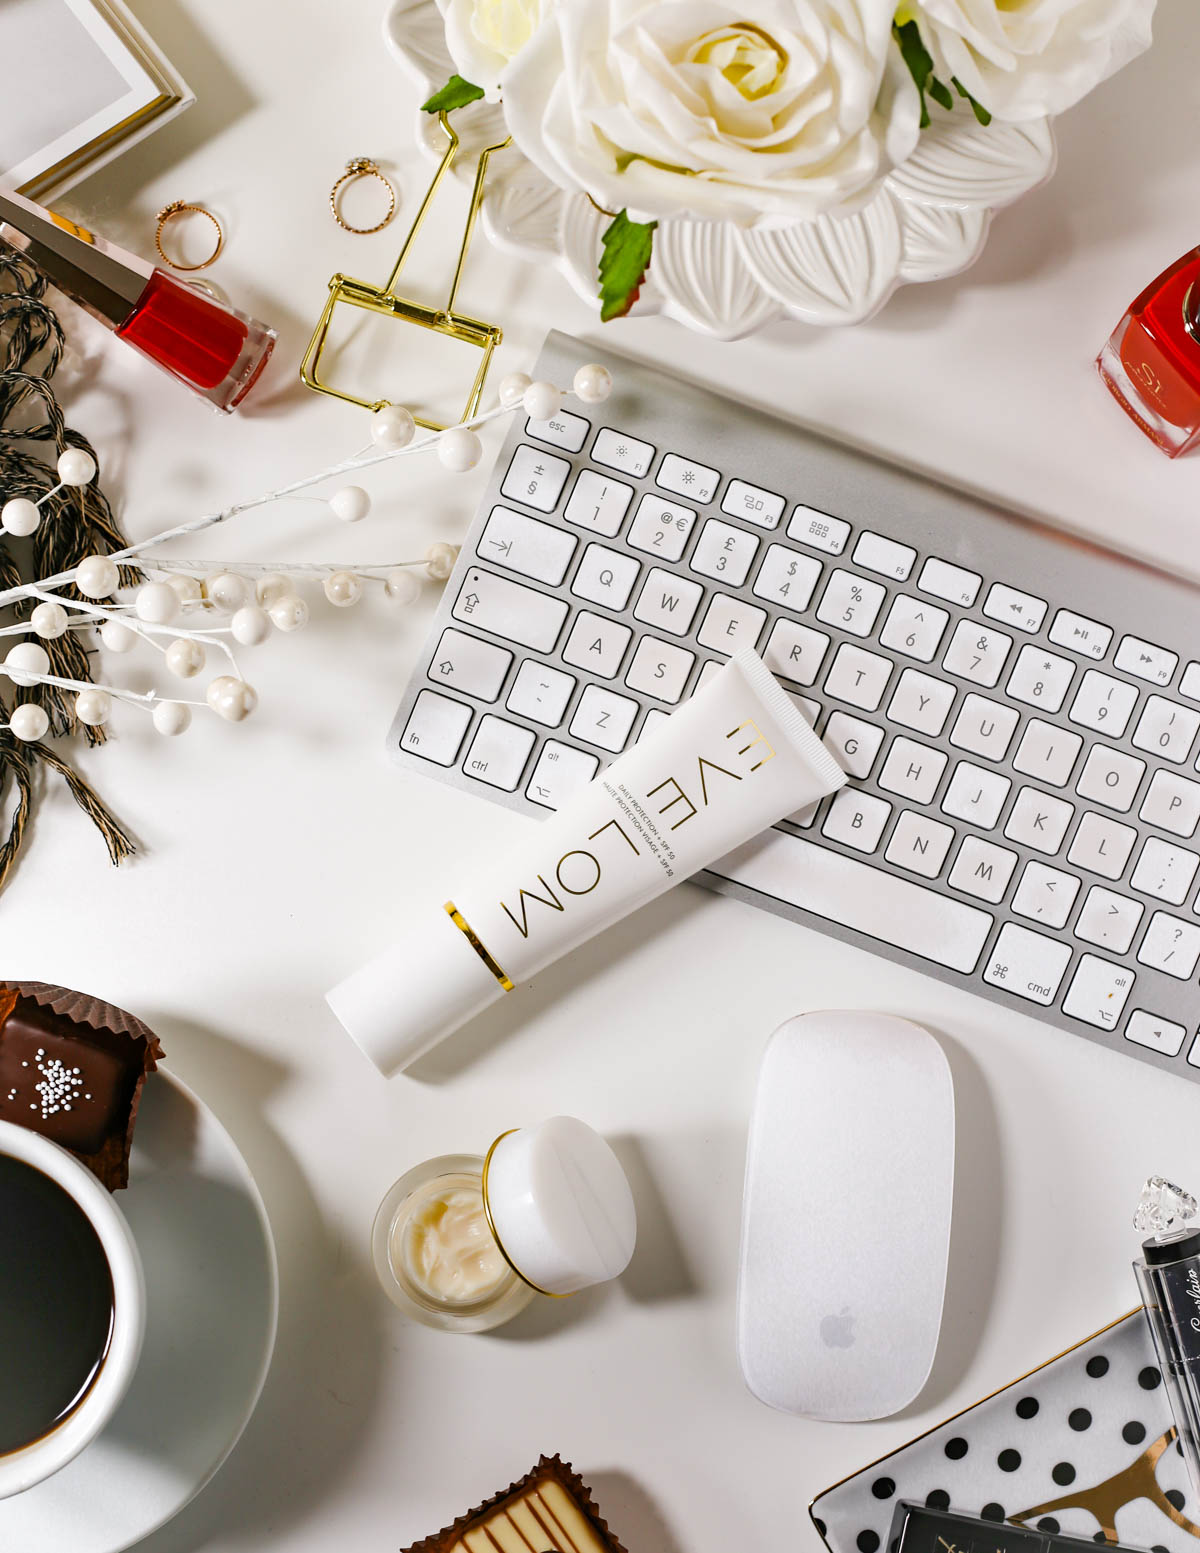 The Basic Skincare Steps you Need in your Routine | feat Eve Lom Eye Cream & Eve Lom Daily Protection SPF50 with desktop, flowers and beauty styling_